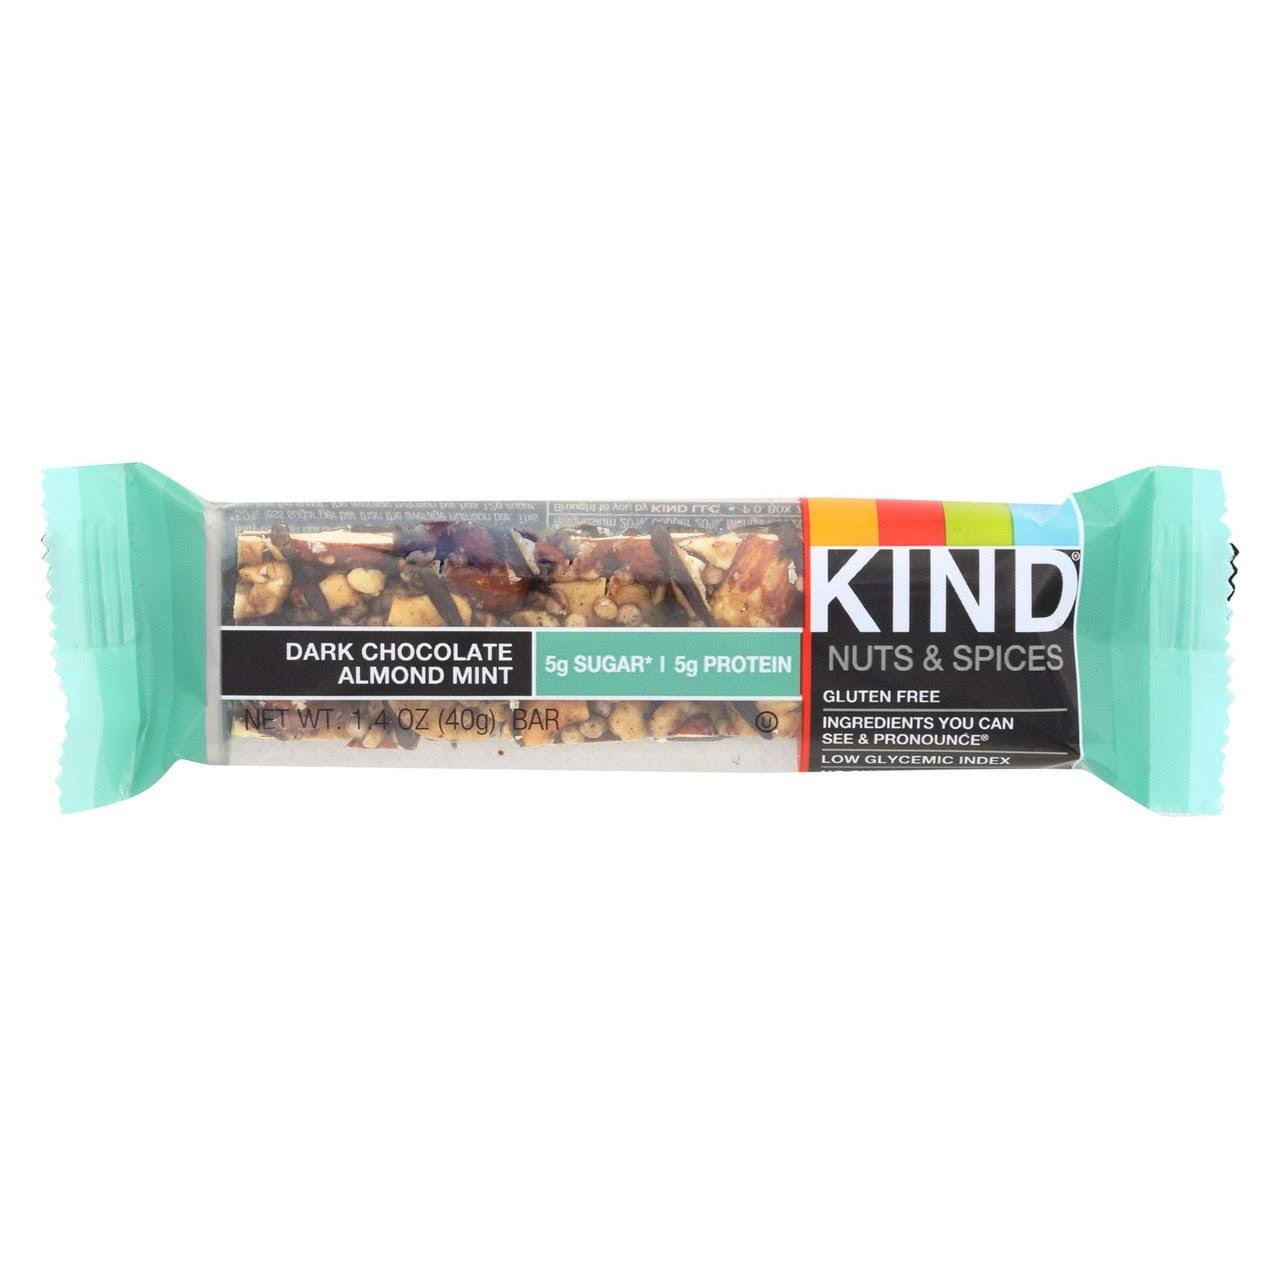 Kind Nuts and Spices Granola Bar - Dark Chocolate Almond Mint